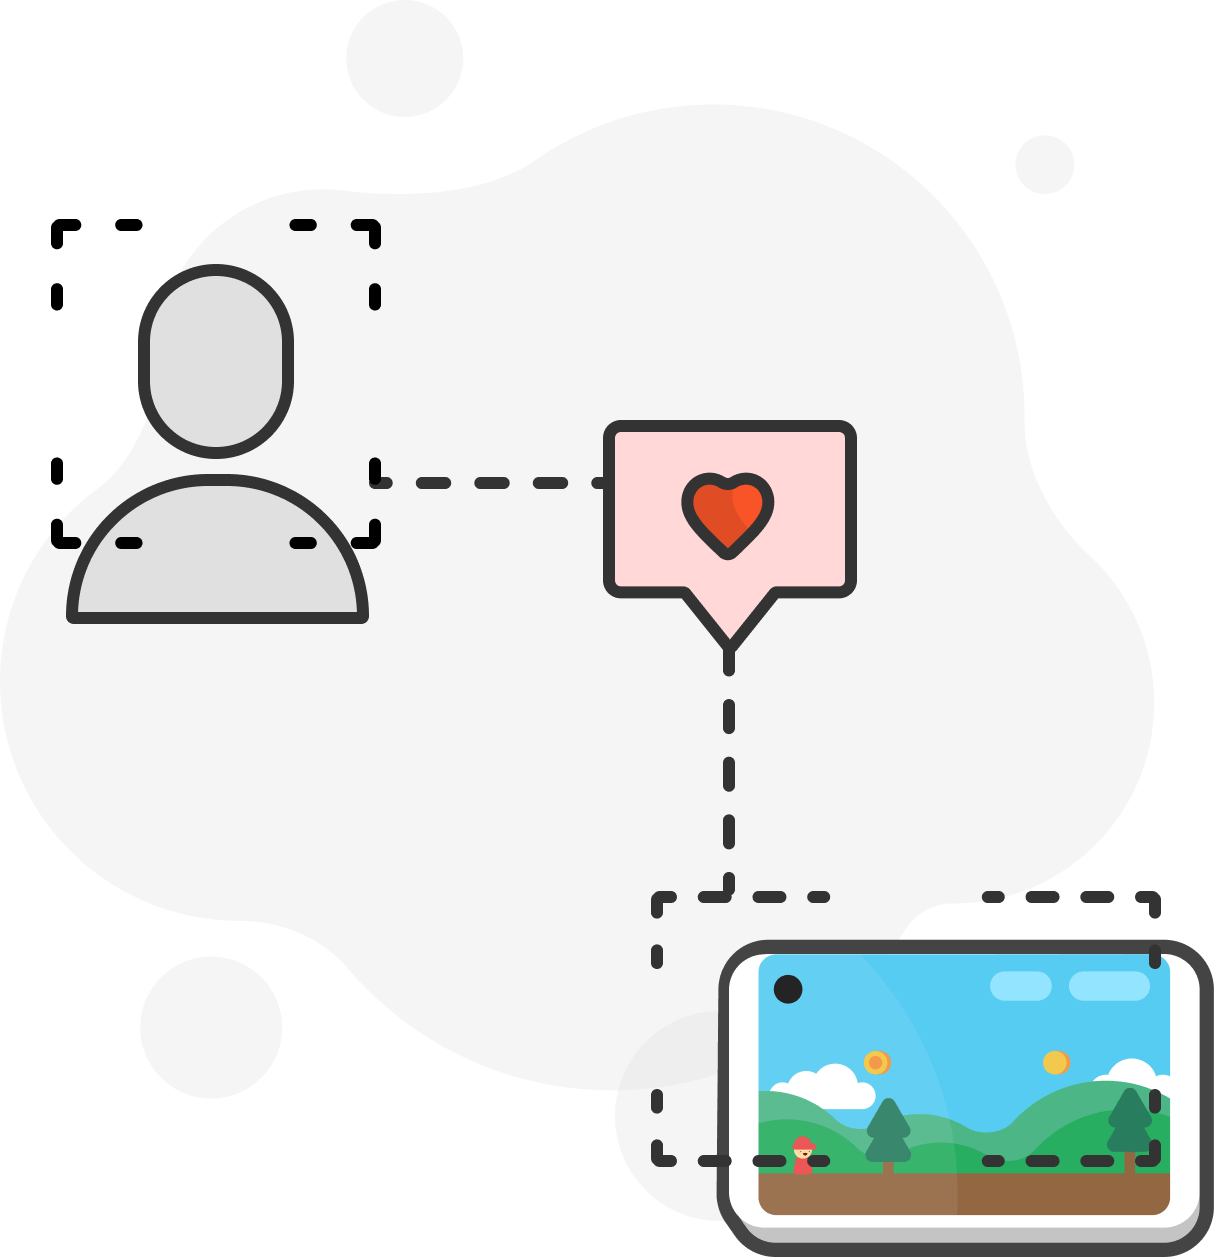 illustration of a heart connecting the user with a phone